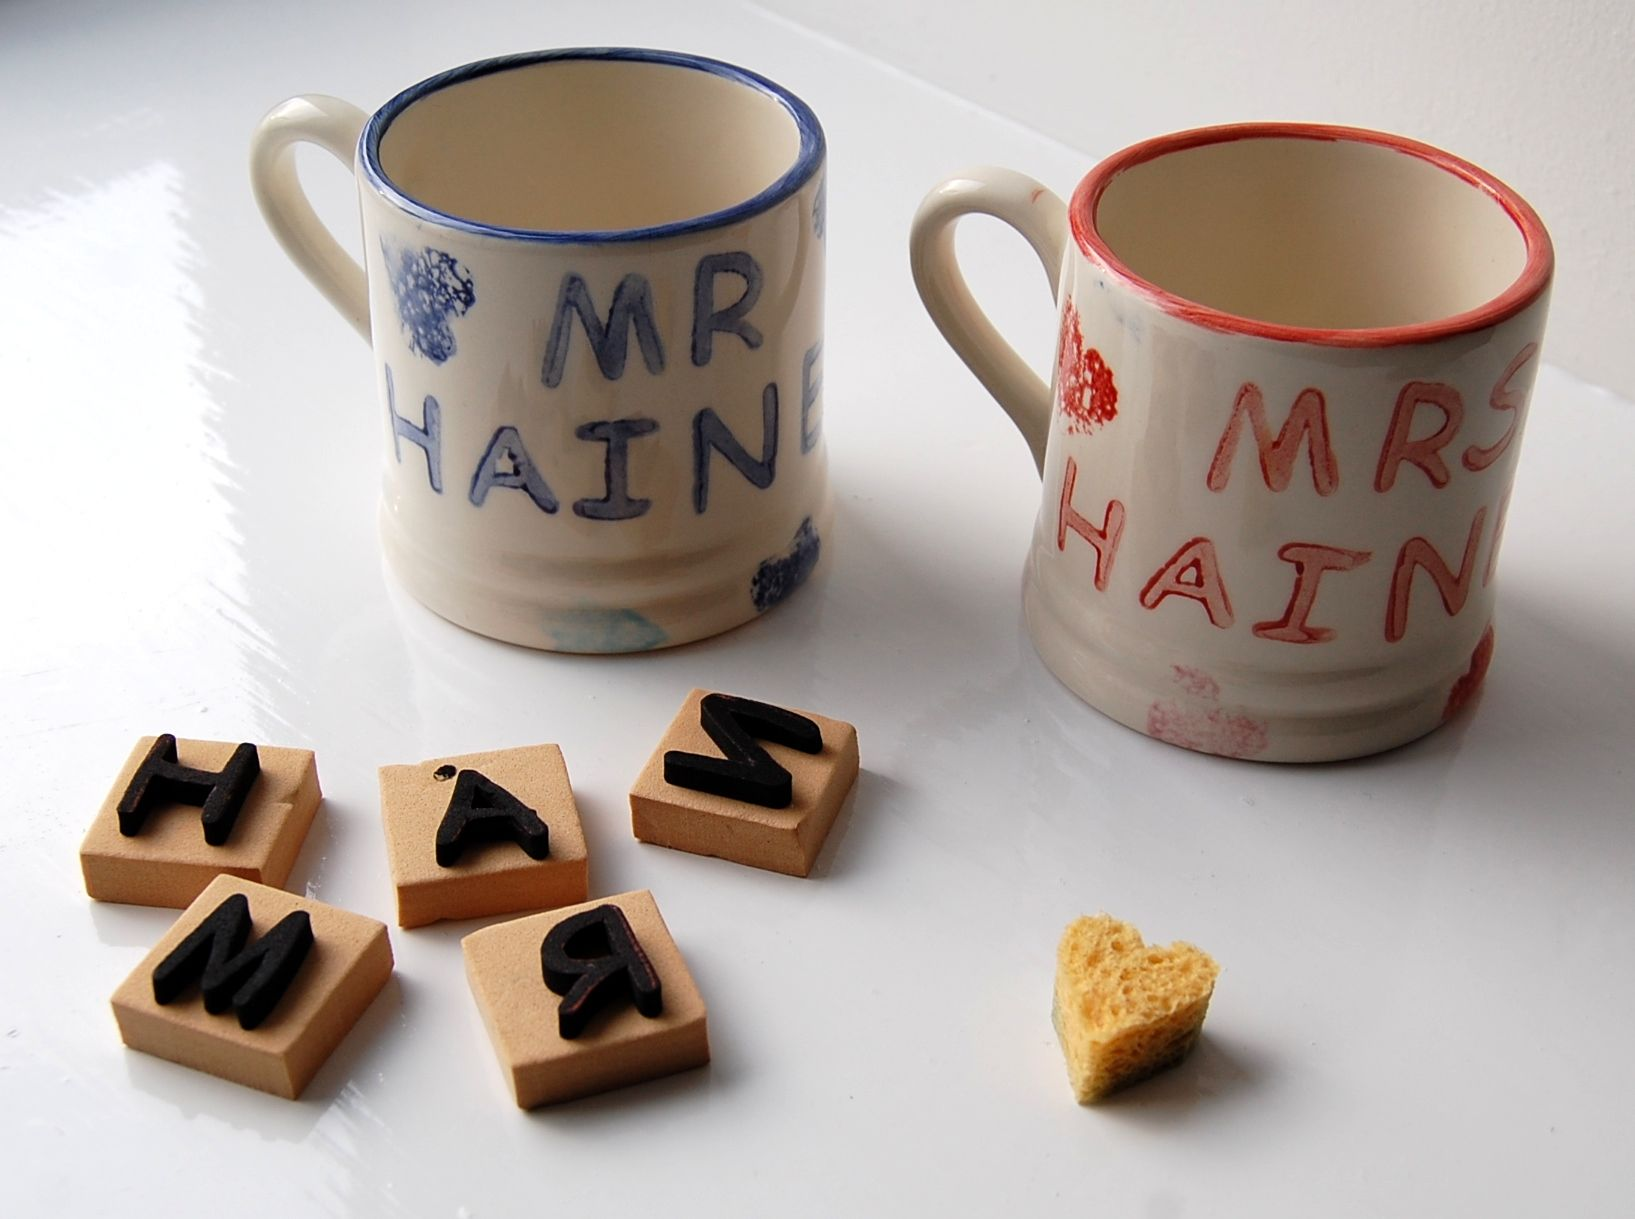 Pottery Wedding Gifts: Pottery Painted Mr And Mrs Mugs. DIY Craft Handpainted